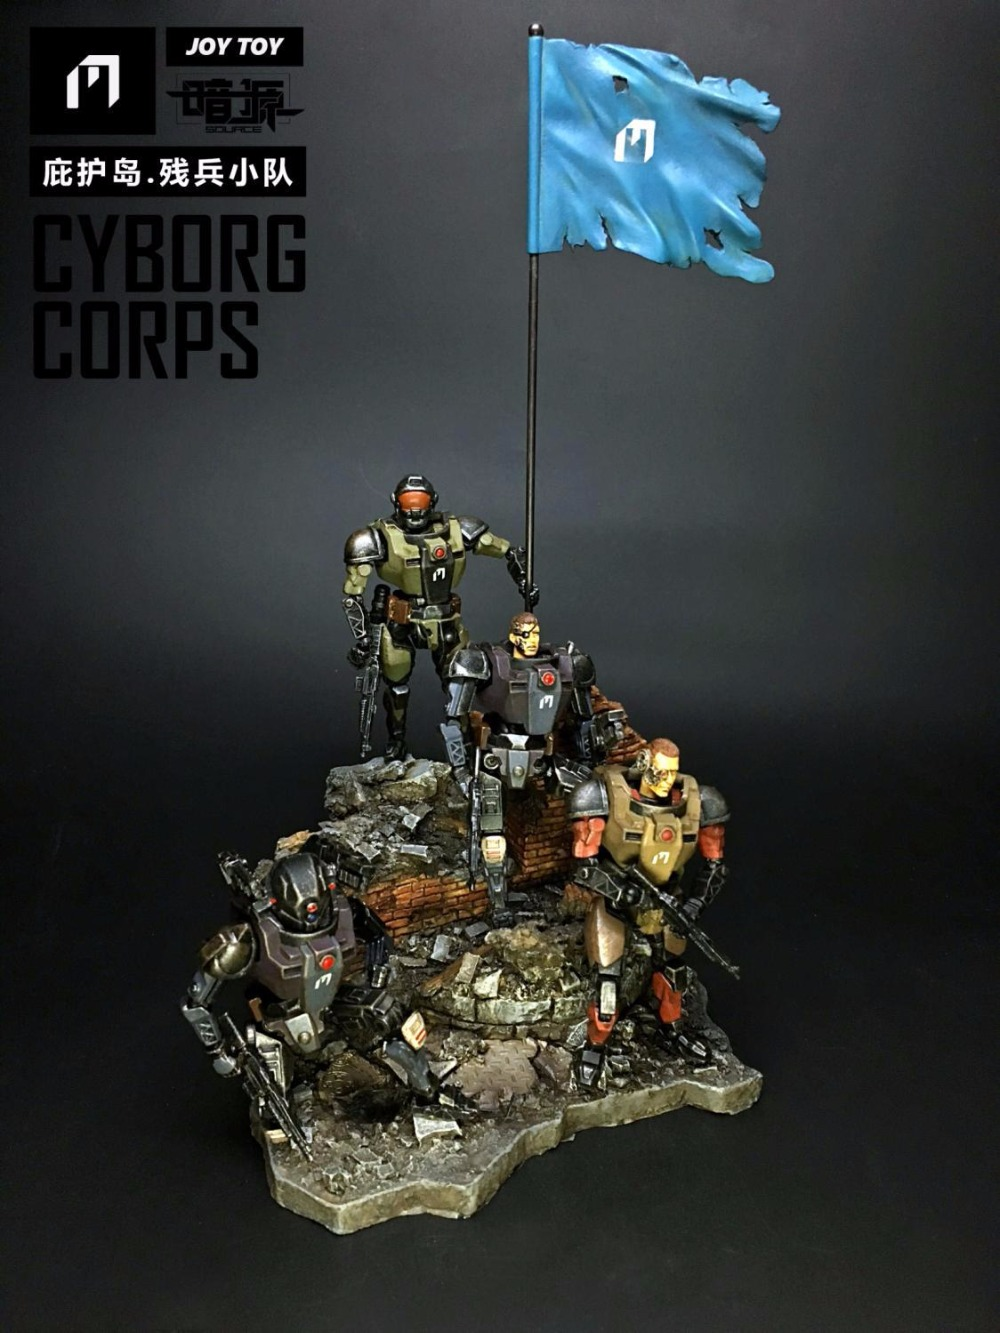 JOY TOY 1:27 soldiers Action Figure CYBORG CORPS  military soldiers Holiday/Birthday Gift  New Box 1 toy т58754